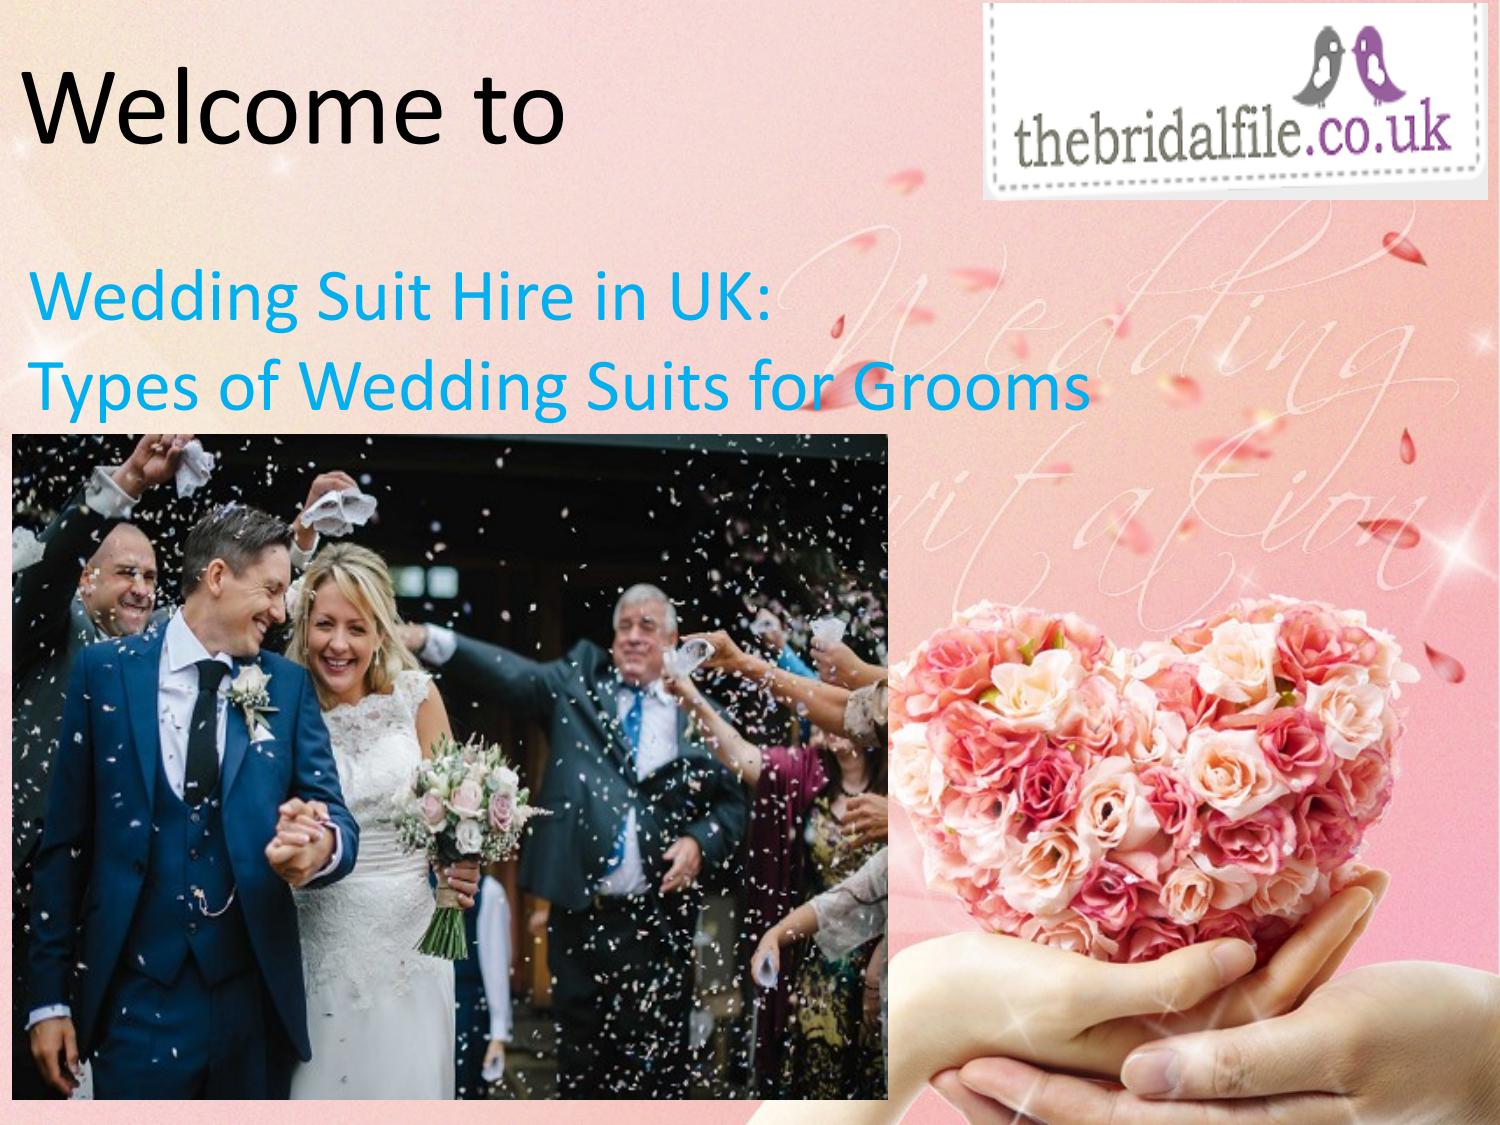 Wedding Suit Hire in UK: Types of Wedding Suits for Grooms